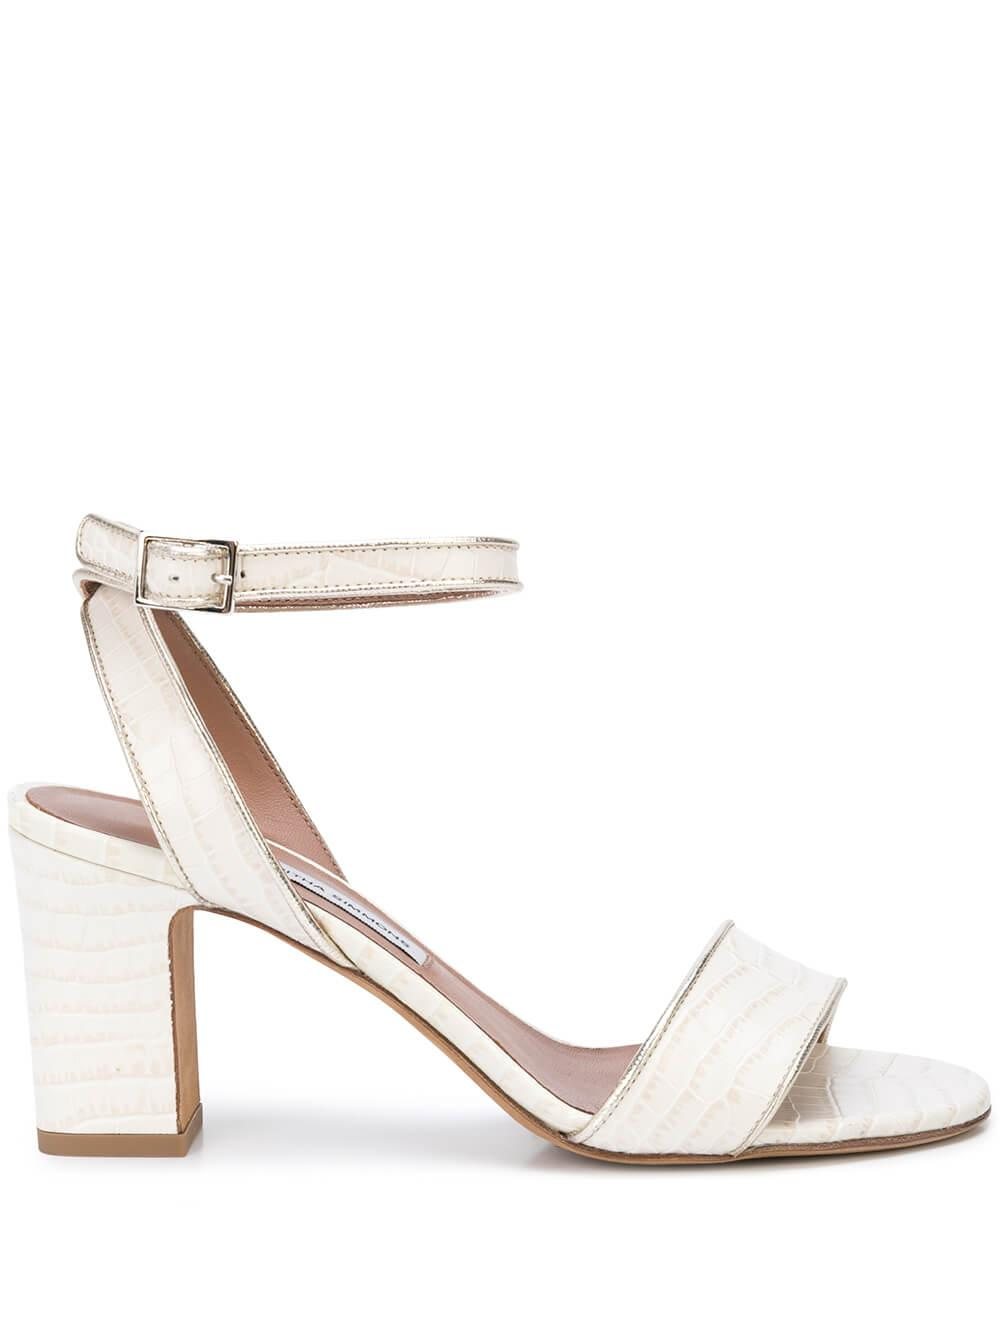 Leticia Croc 75MM Block Heel Sandal